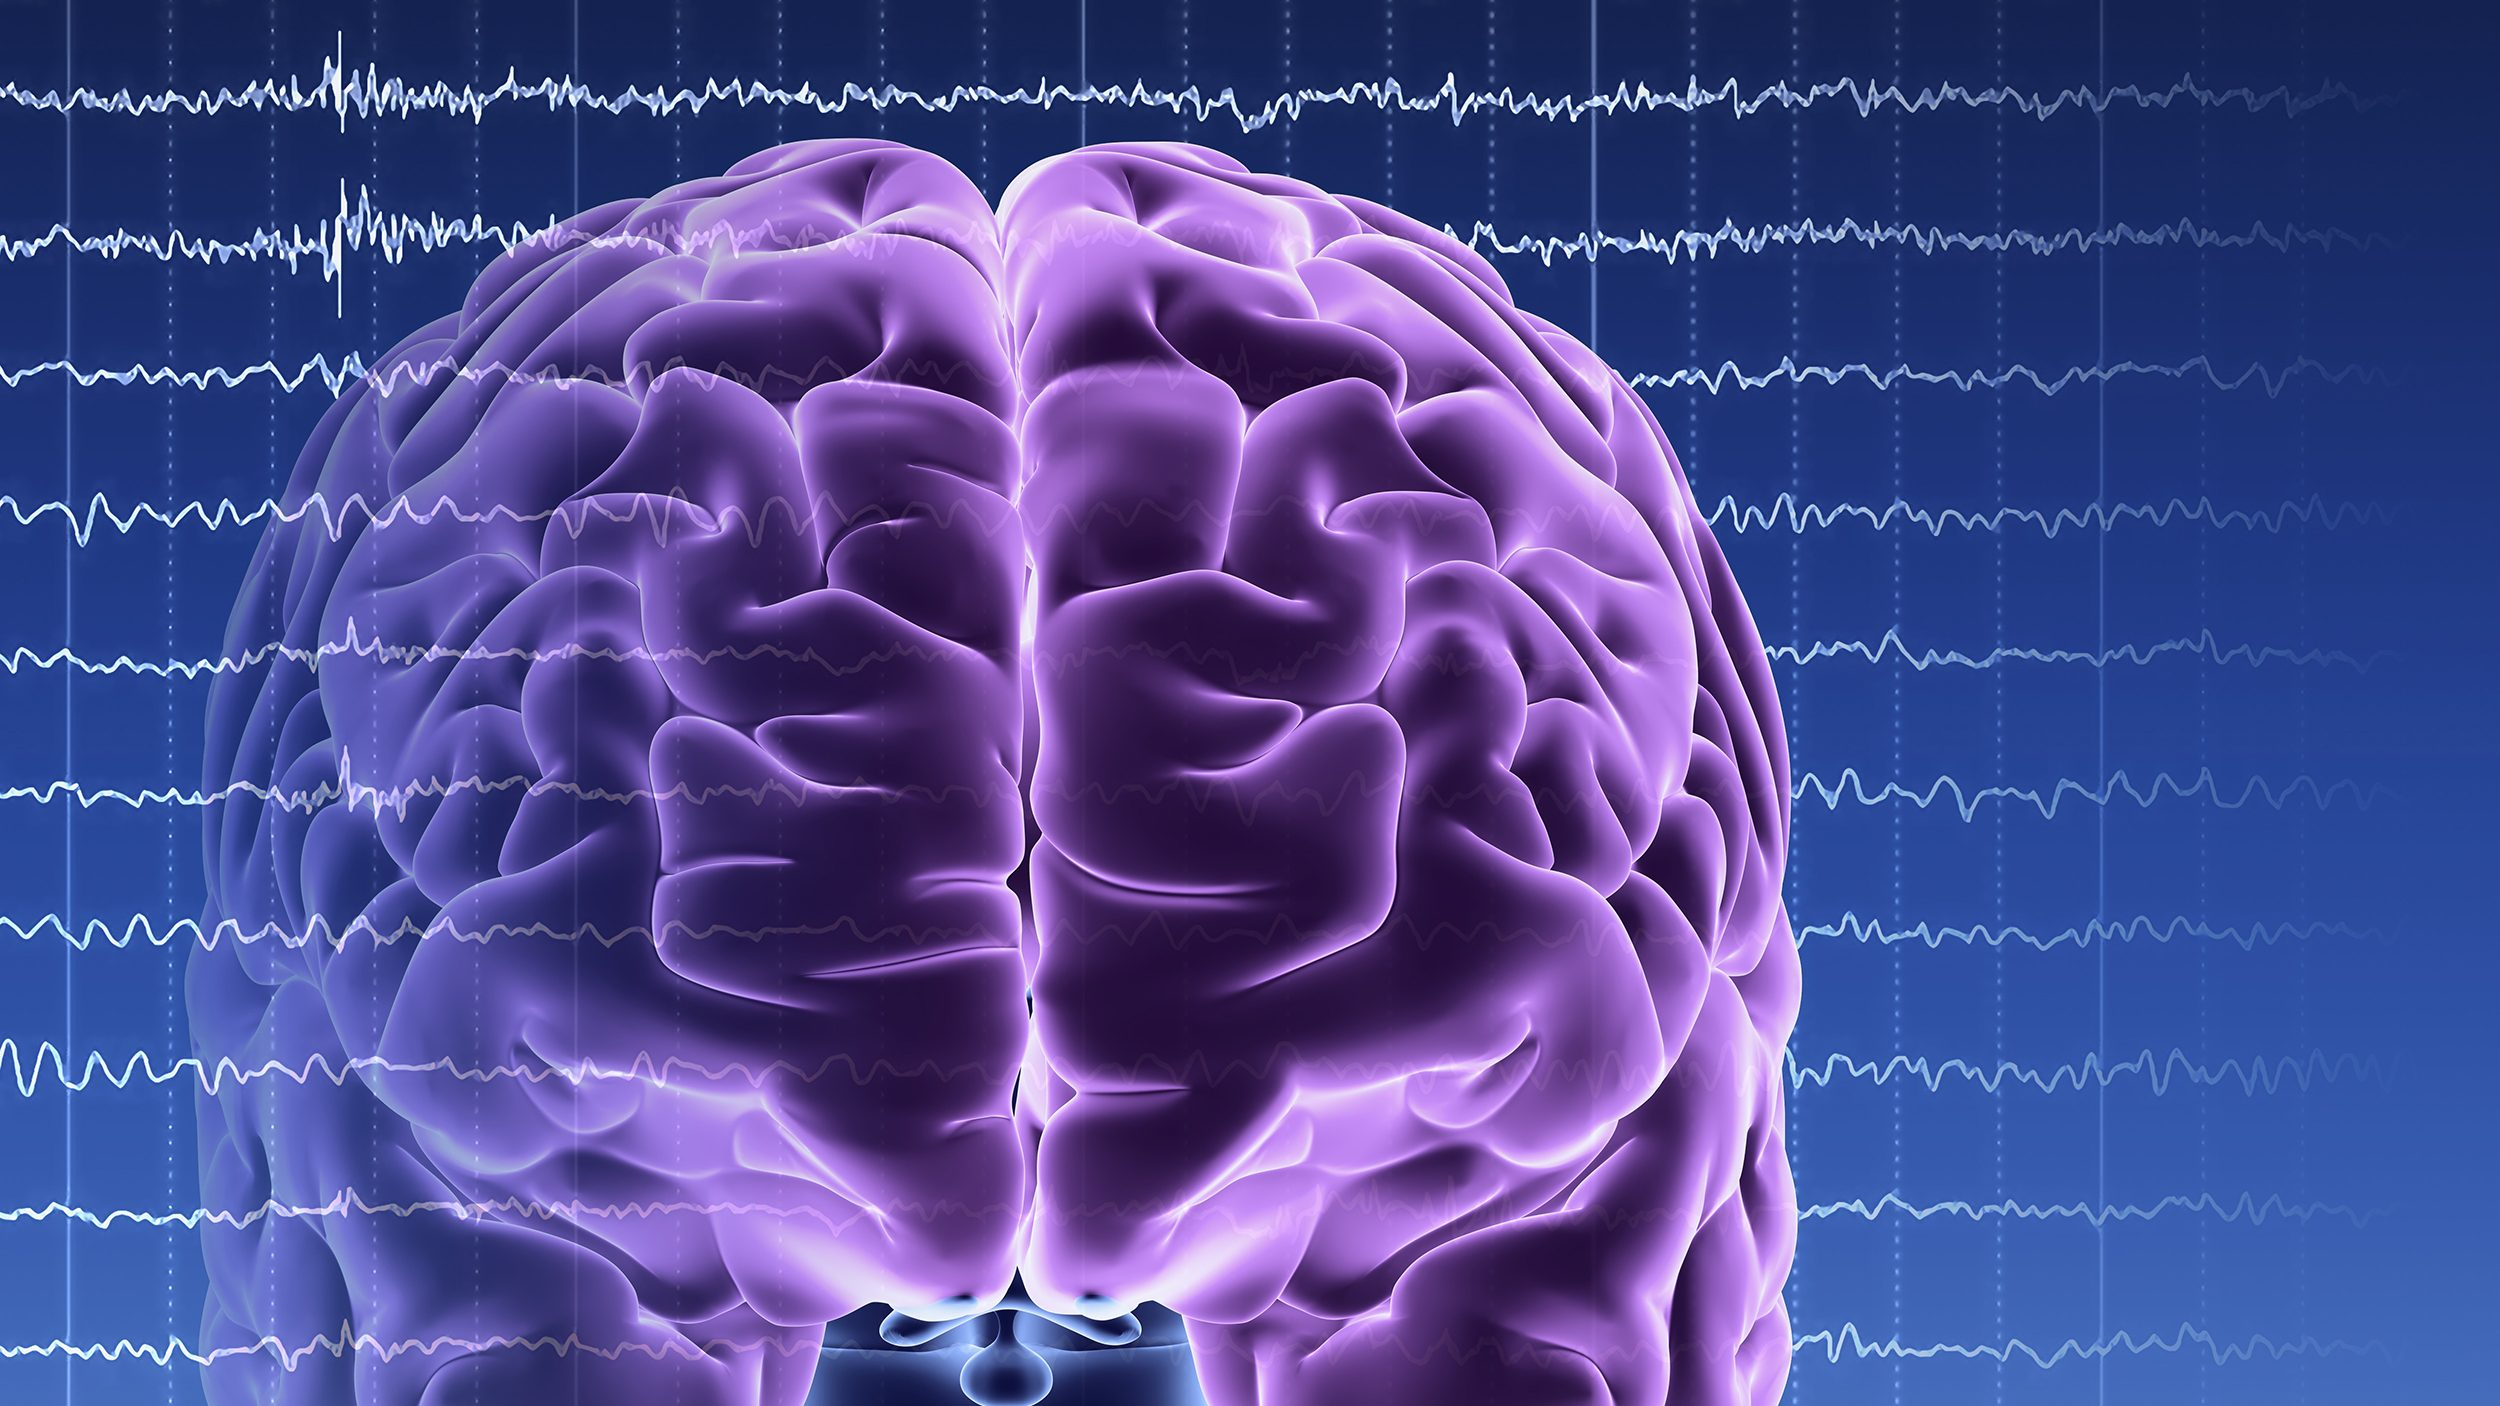 New Findings Shows Brain Activity Lasting Ten Minutes